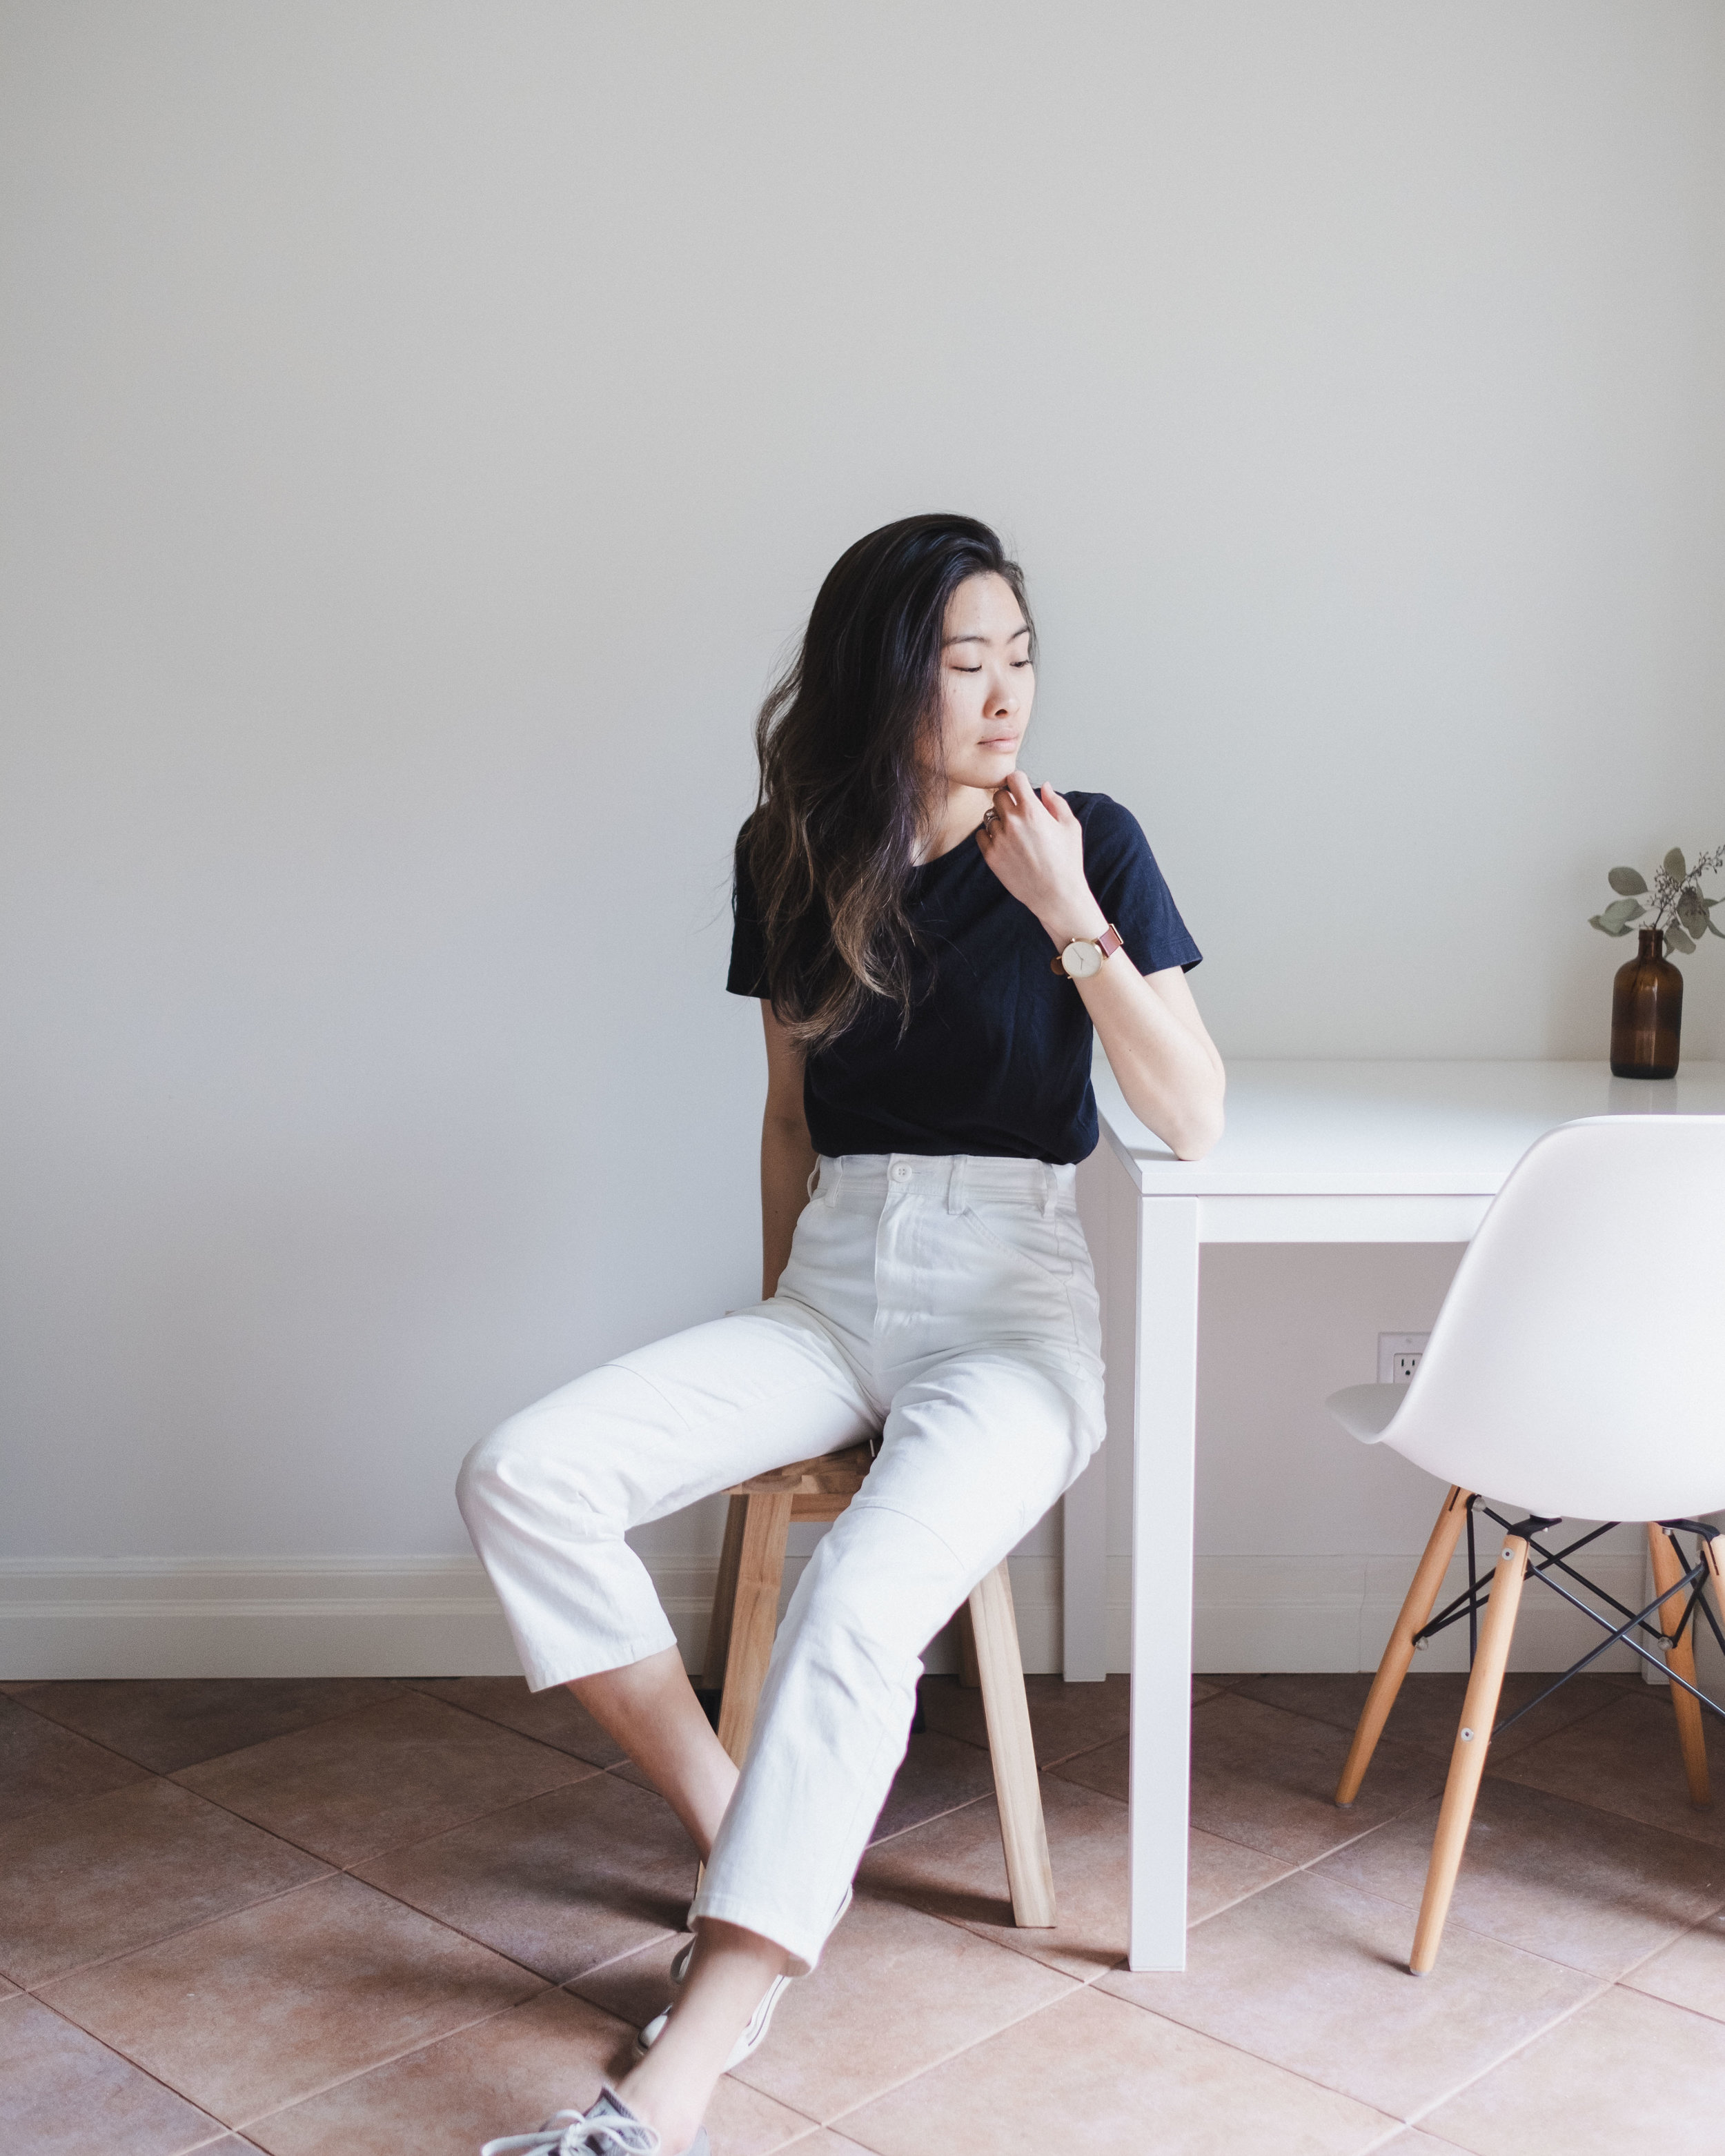 Black Tee by Muji The Carpenter Pant by  Everlane